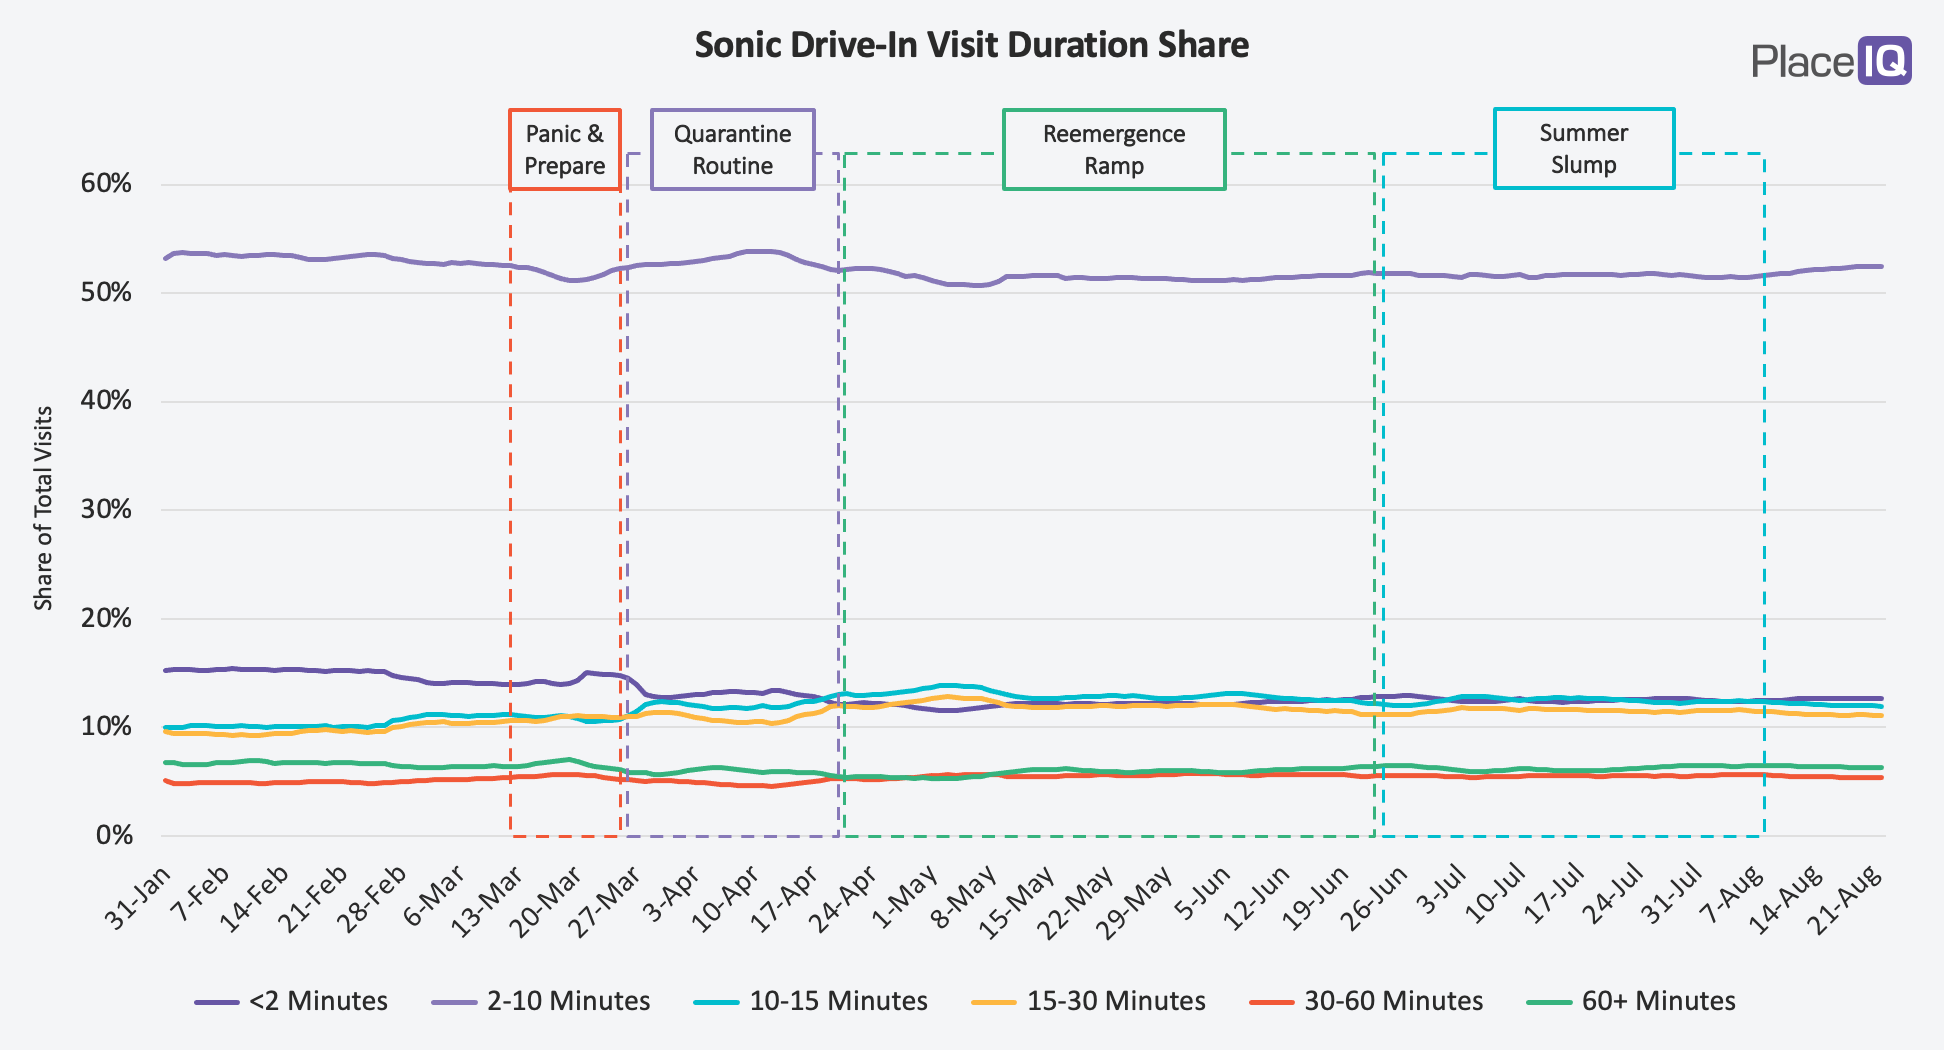 CHART: Sonic Drive-In Visit Duration Share